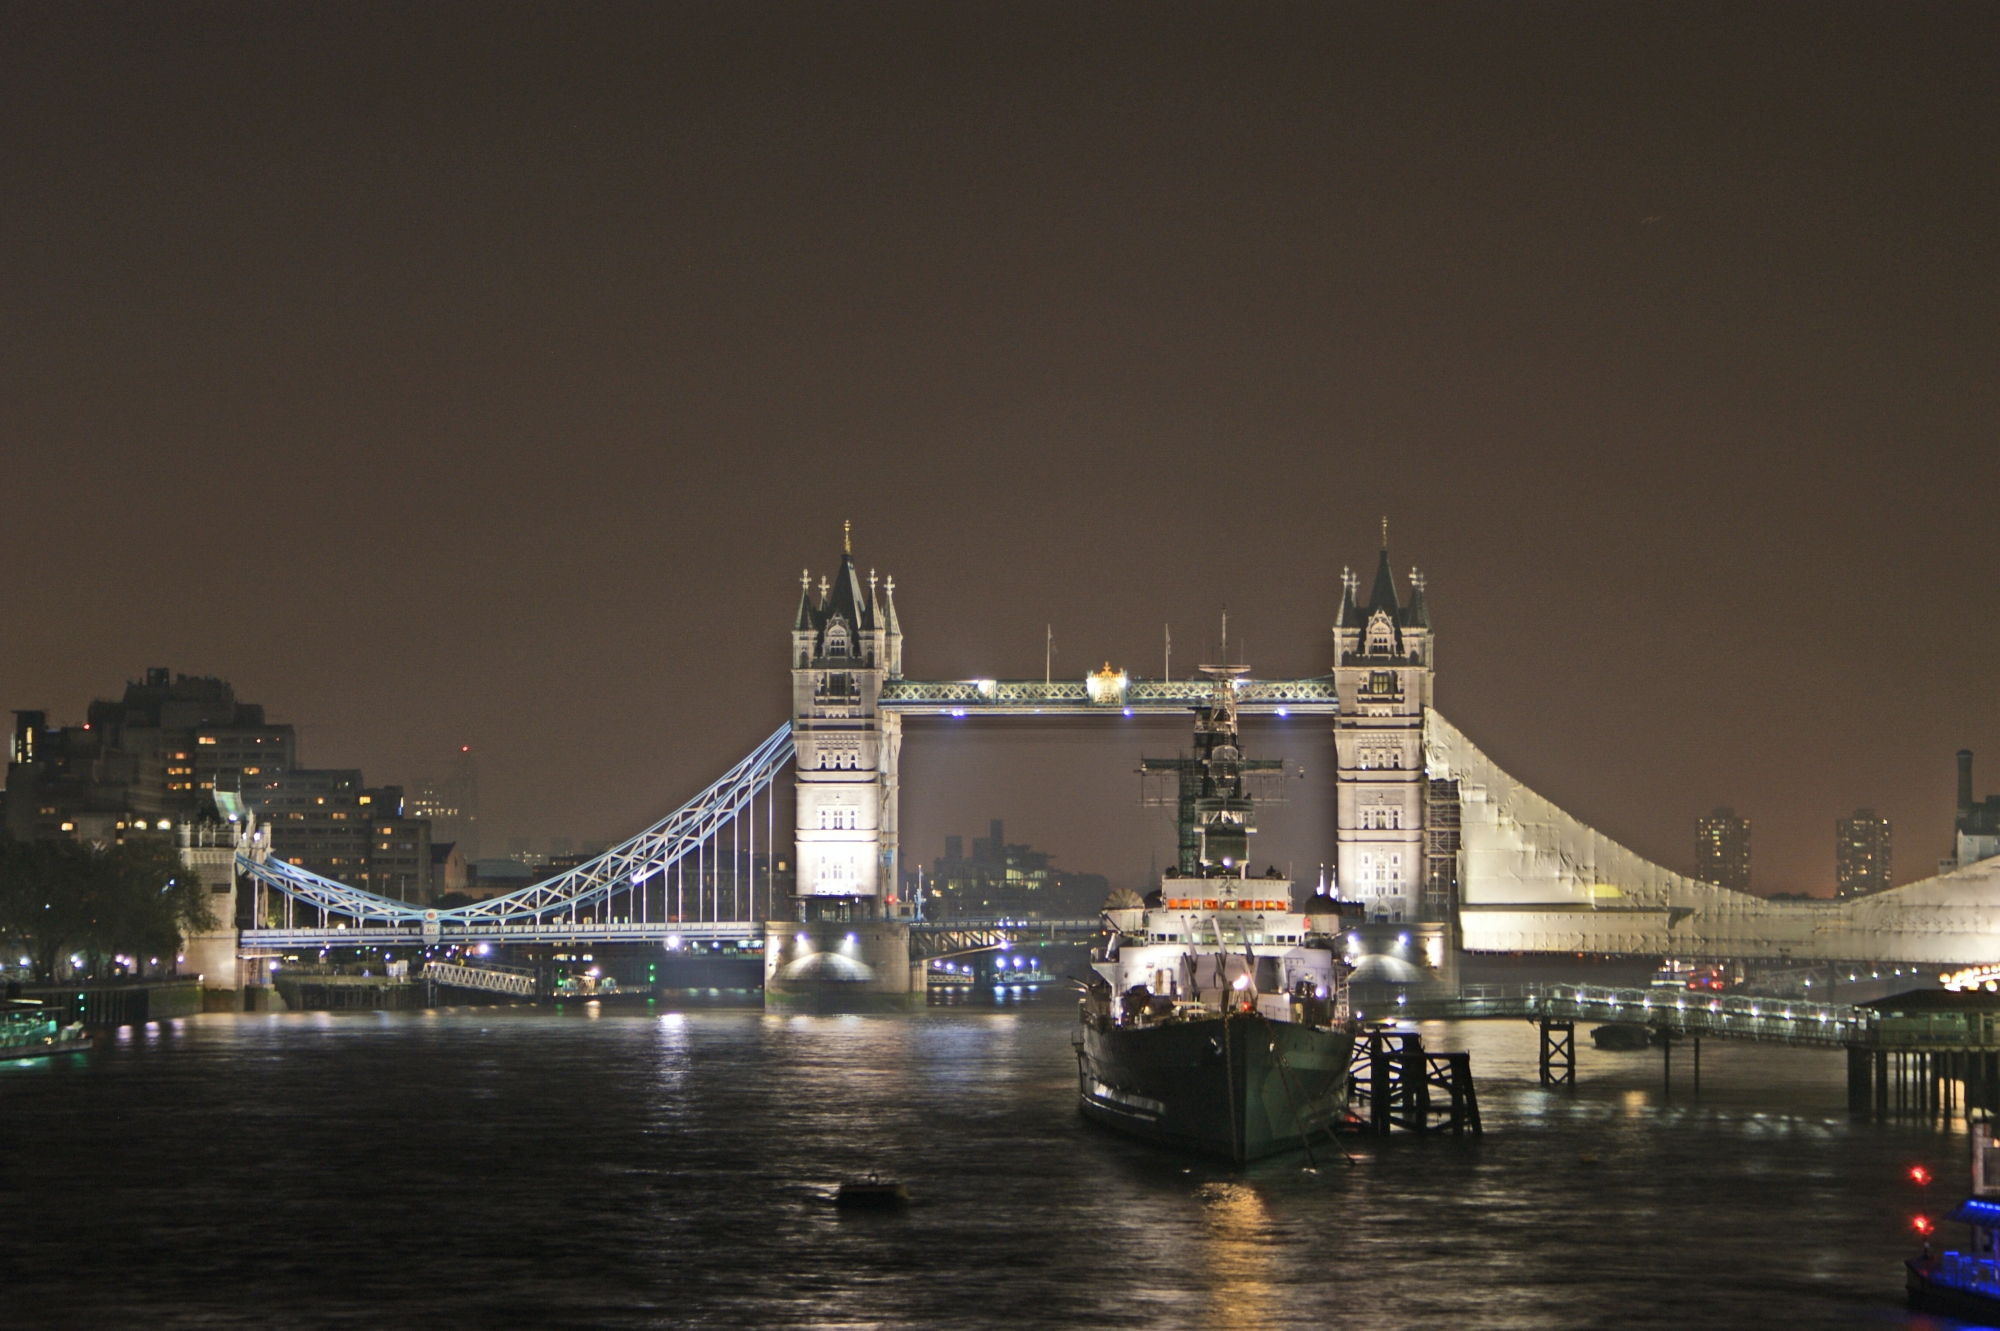 London at Night - Tower Bridge 1